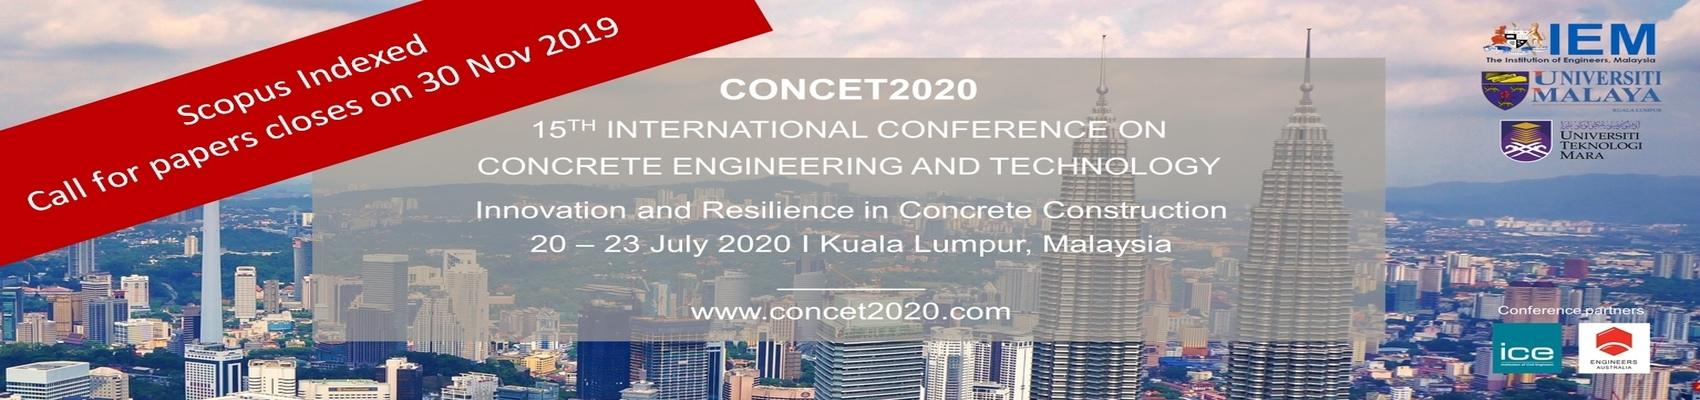 15th International Conference on Concrete Engineering and Technology (CONCET2020)